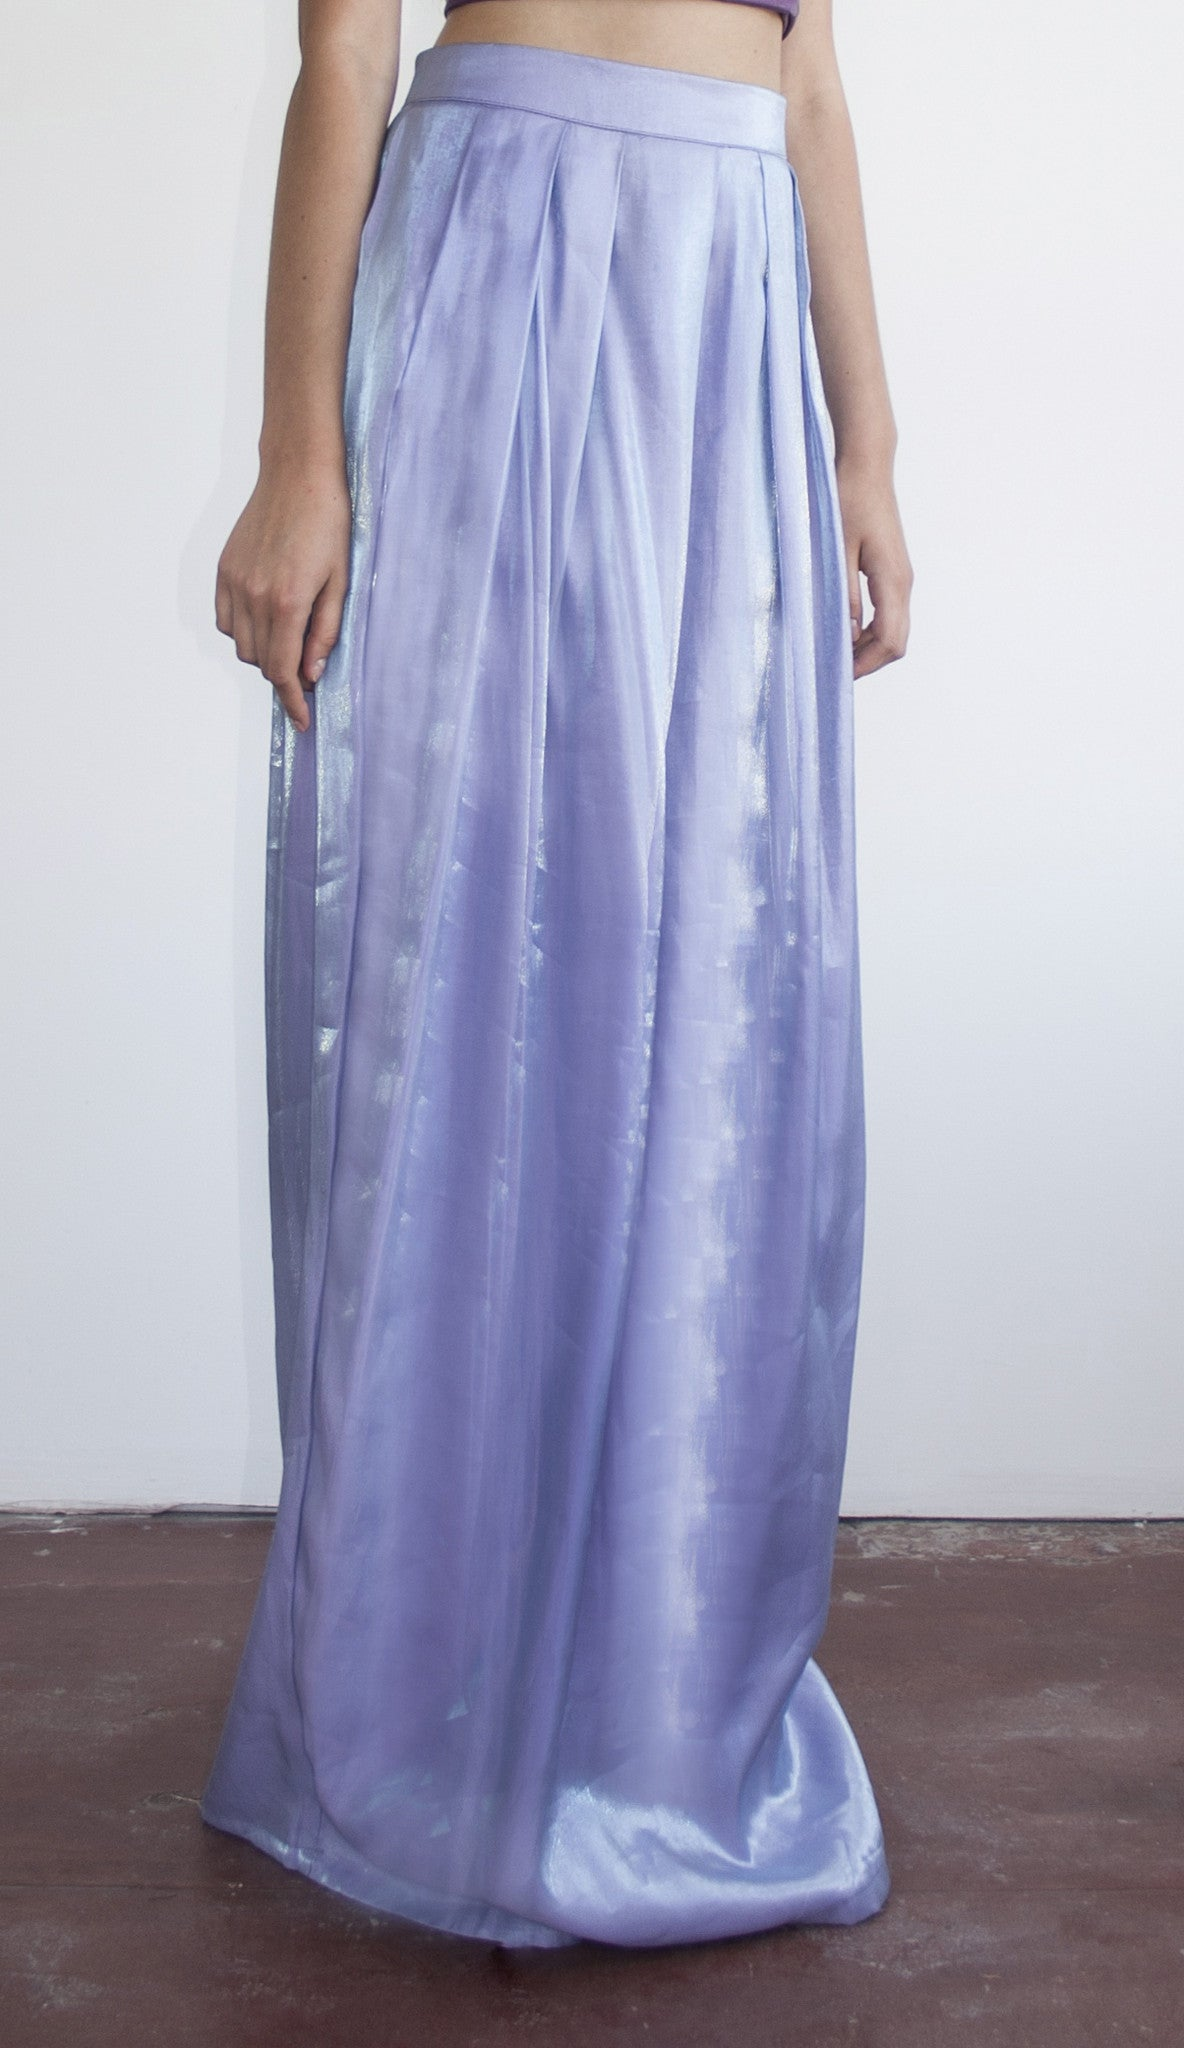 DAY DREAMER MAXI SKIRT - DARK